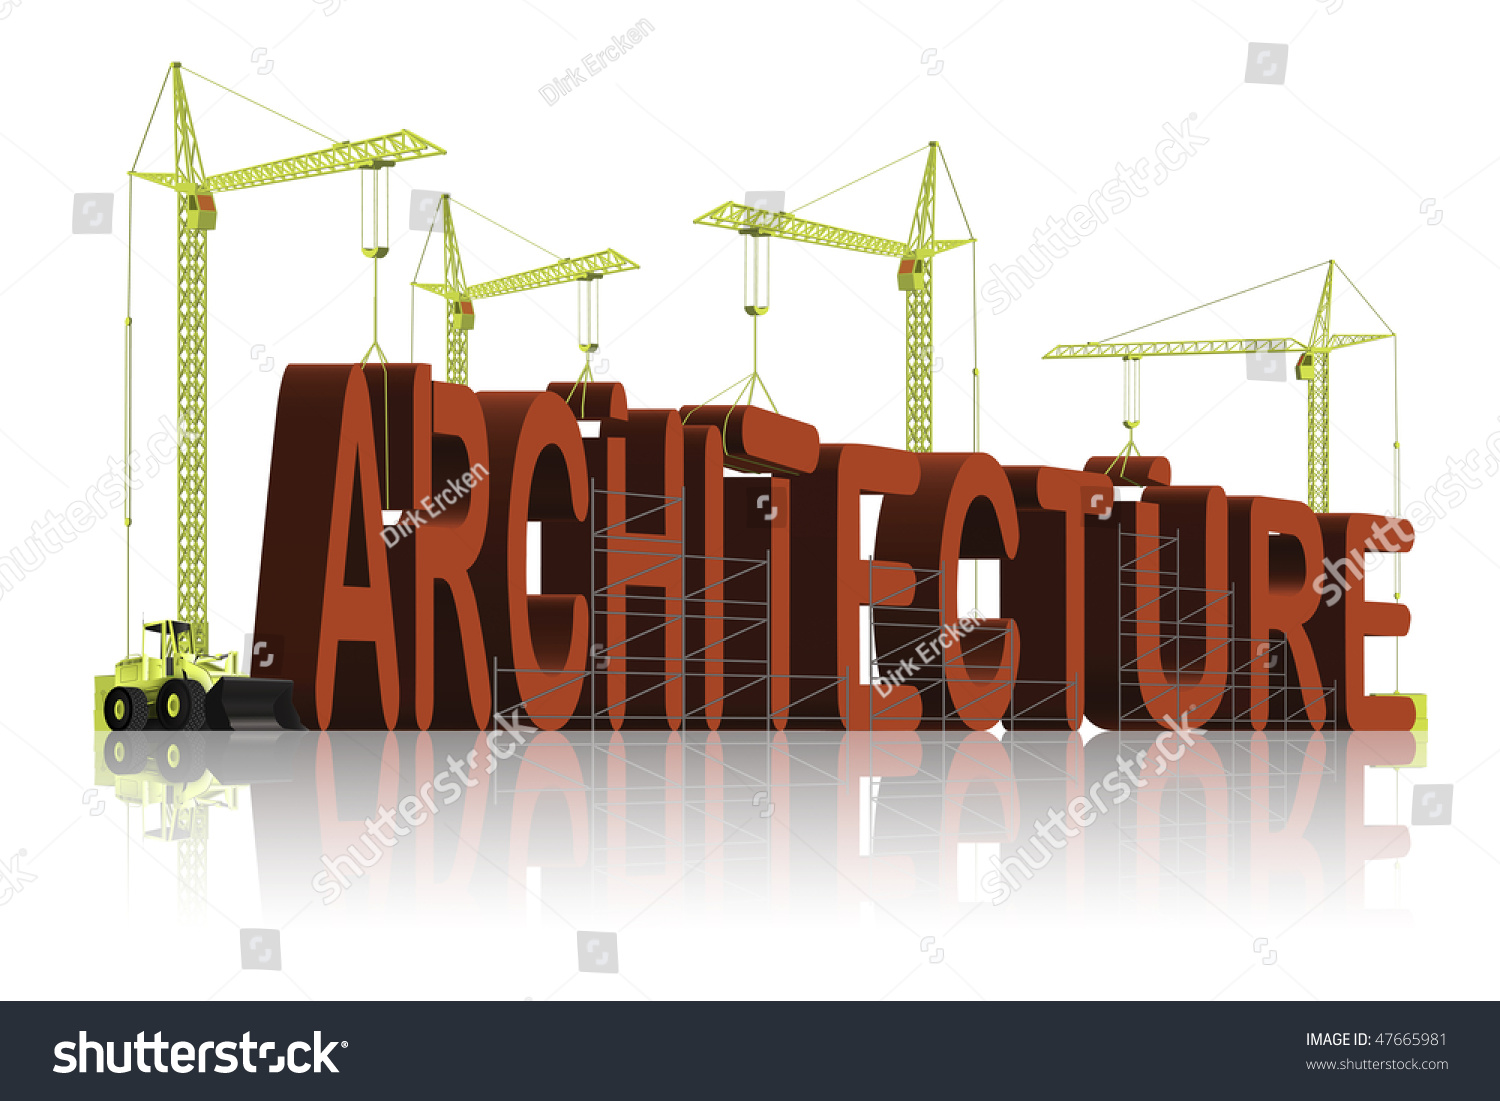 Architecture Under Construction In 3D Words The Creation Of Architect Building A House Or Apartment